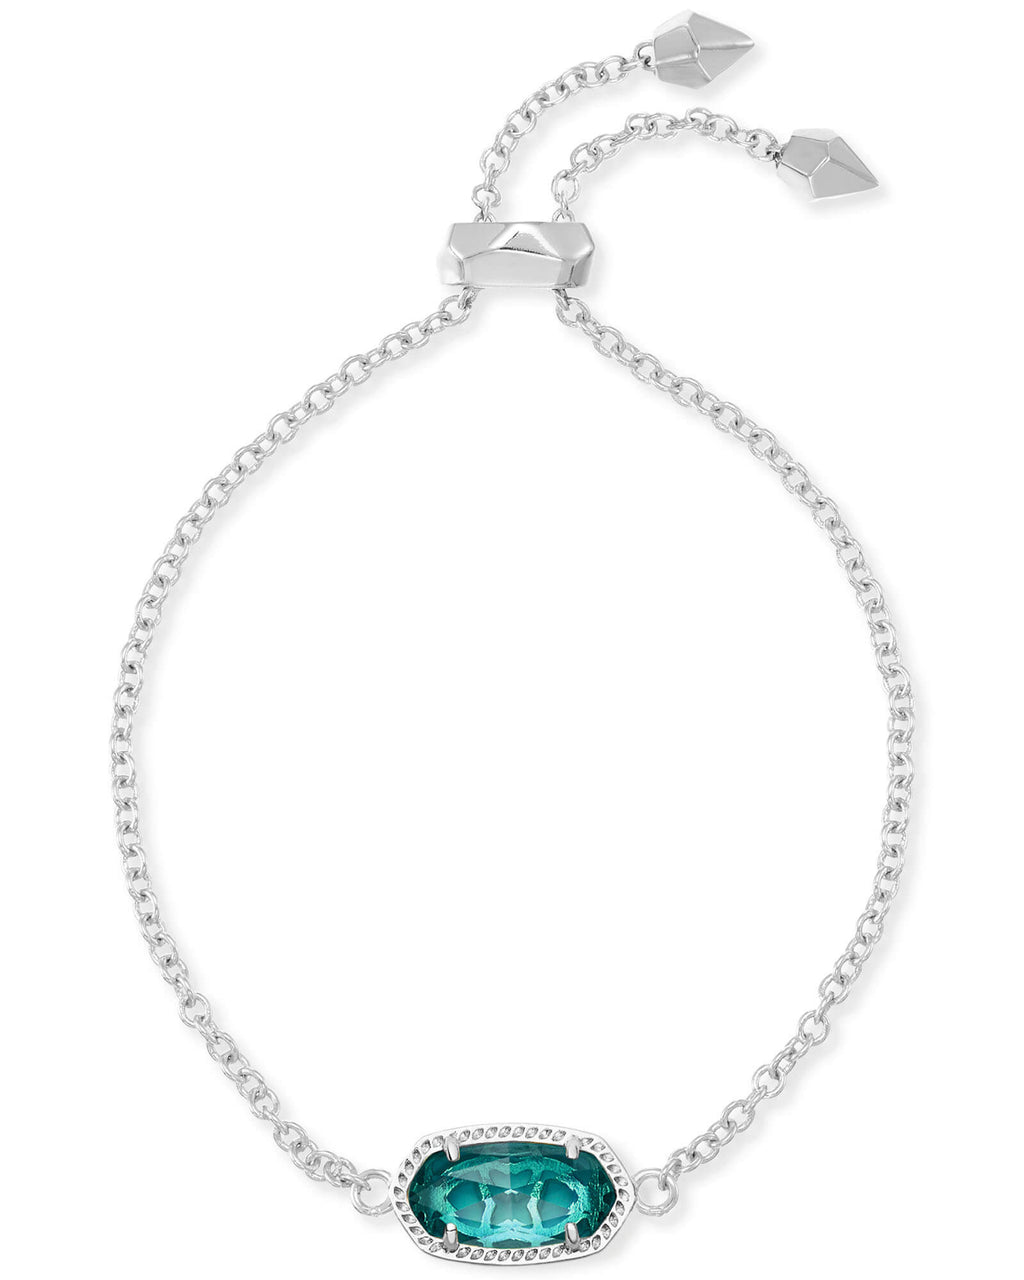 Kendra Scott Elaina Silver Adjustable Chain Bracelet In London Blue December Birthstone - Fly Boutique